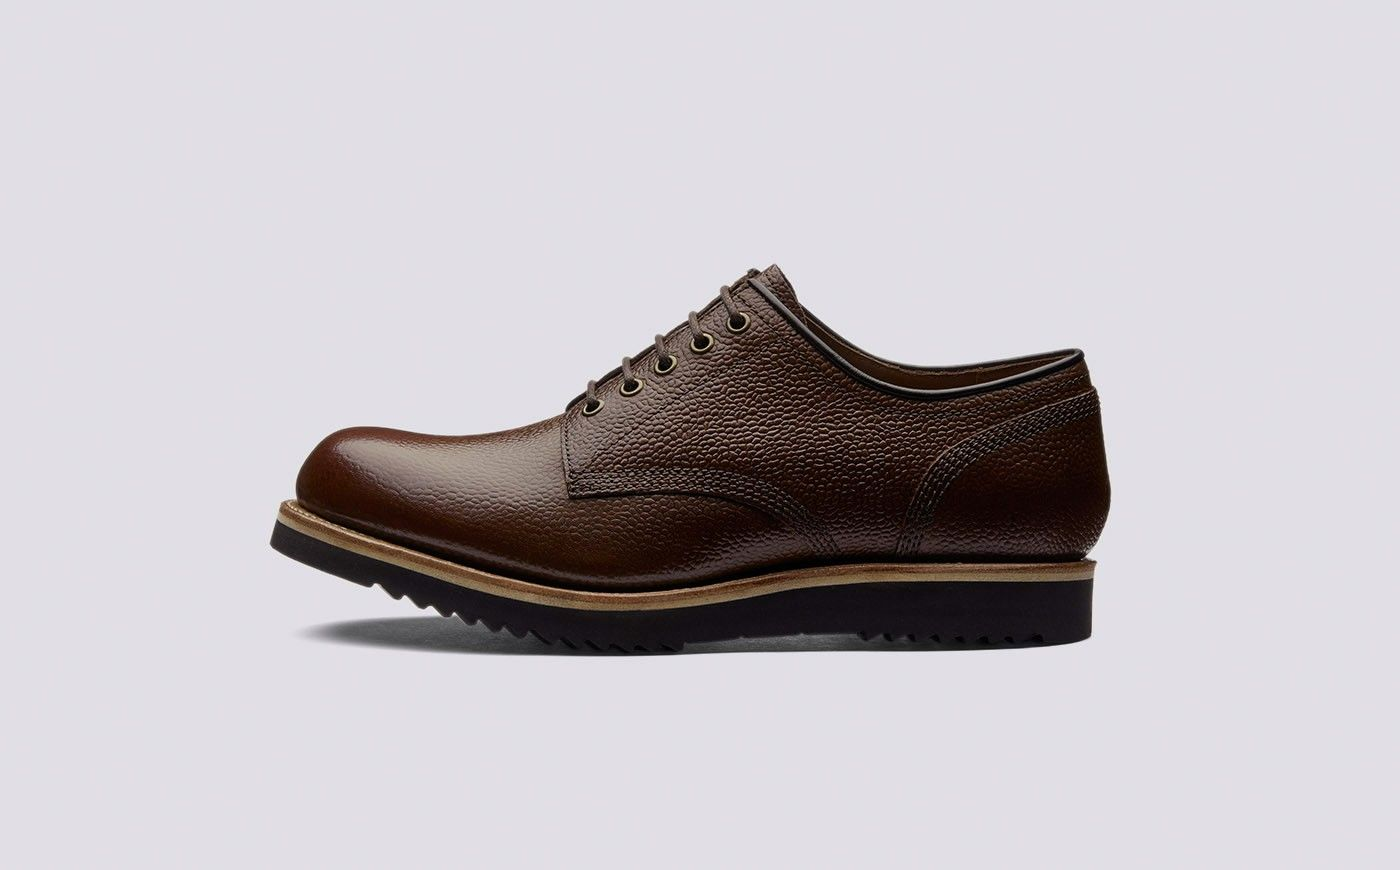 c00bb6ffced Drew | Mens Derby in Dark Brown Country Grain Calf Leather with a ...